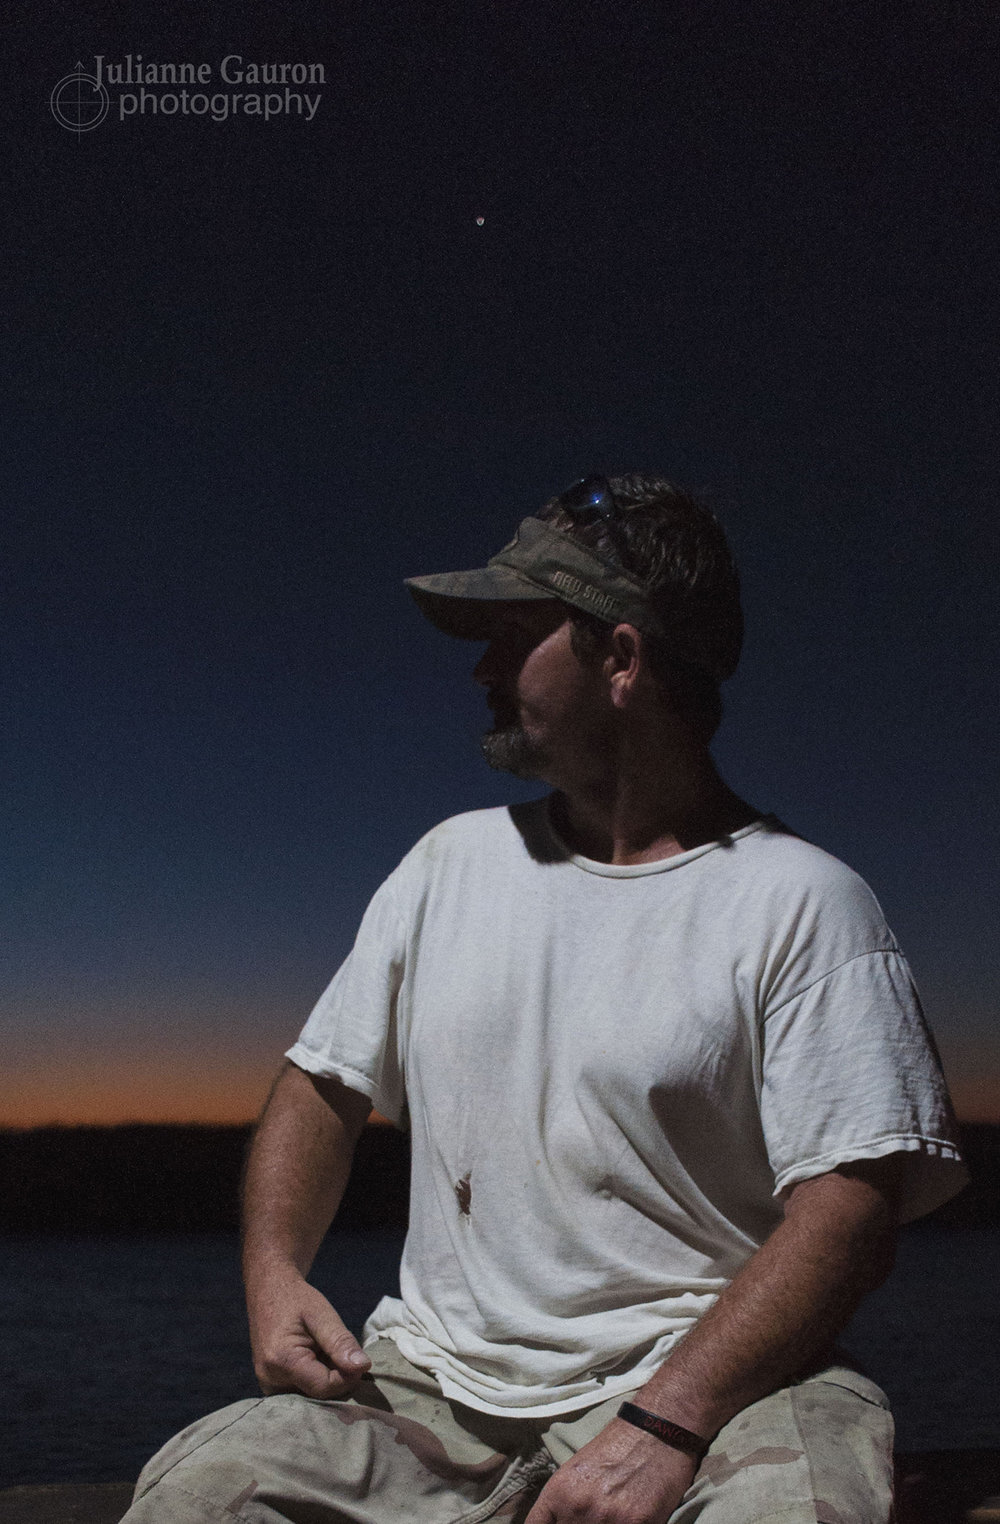 Arty and I met in full darkness on the dock, and as the sun came up he told me he had just gotten out of jail, and of the deep love he has for his daughter and the jobs he works to raise her as a single parent.